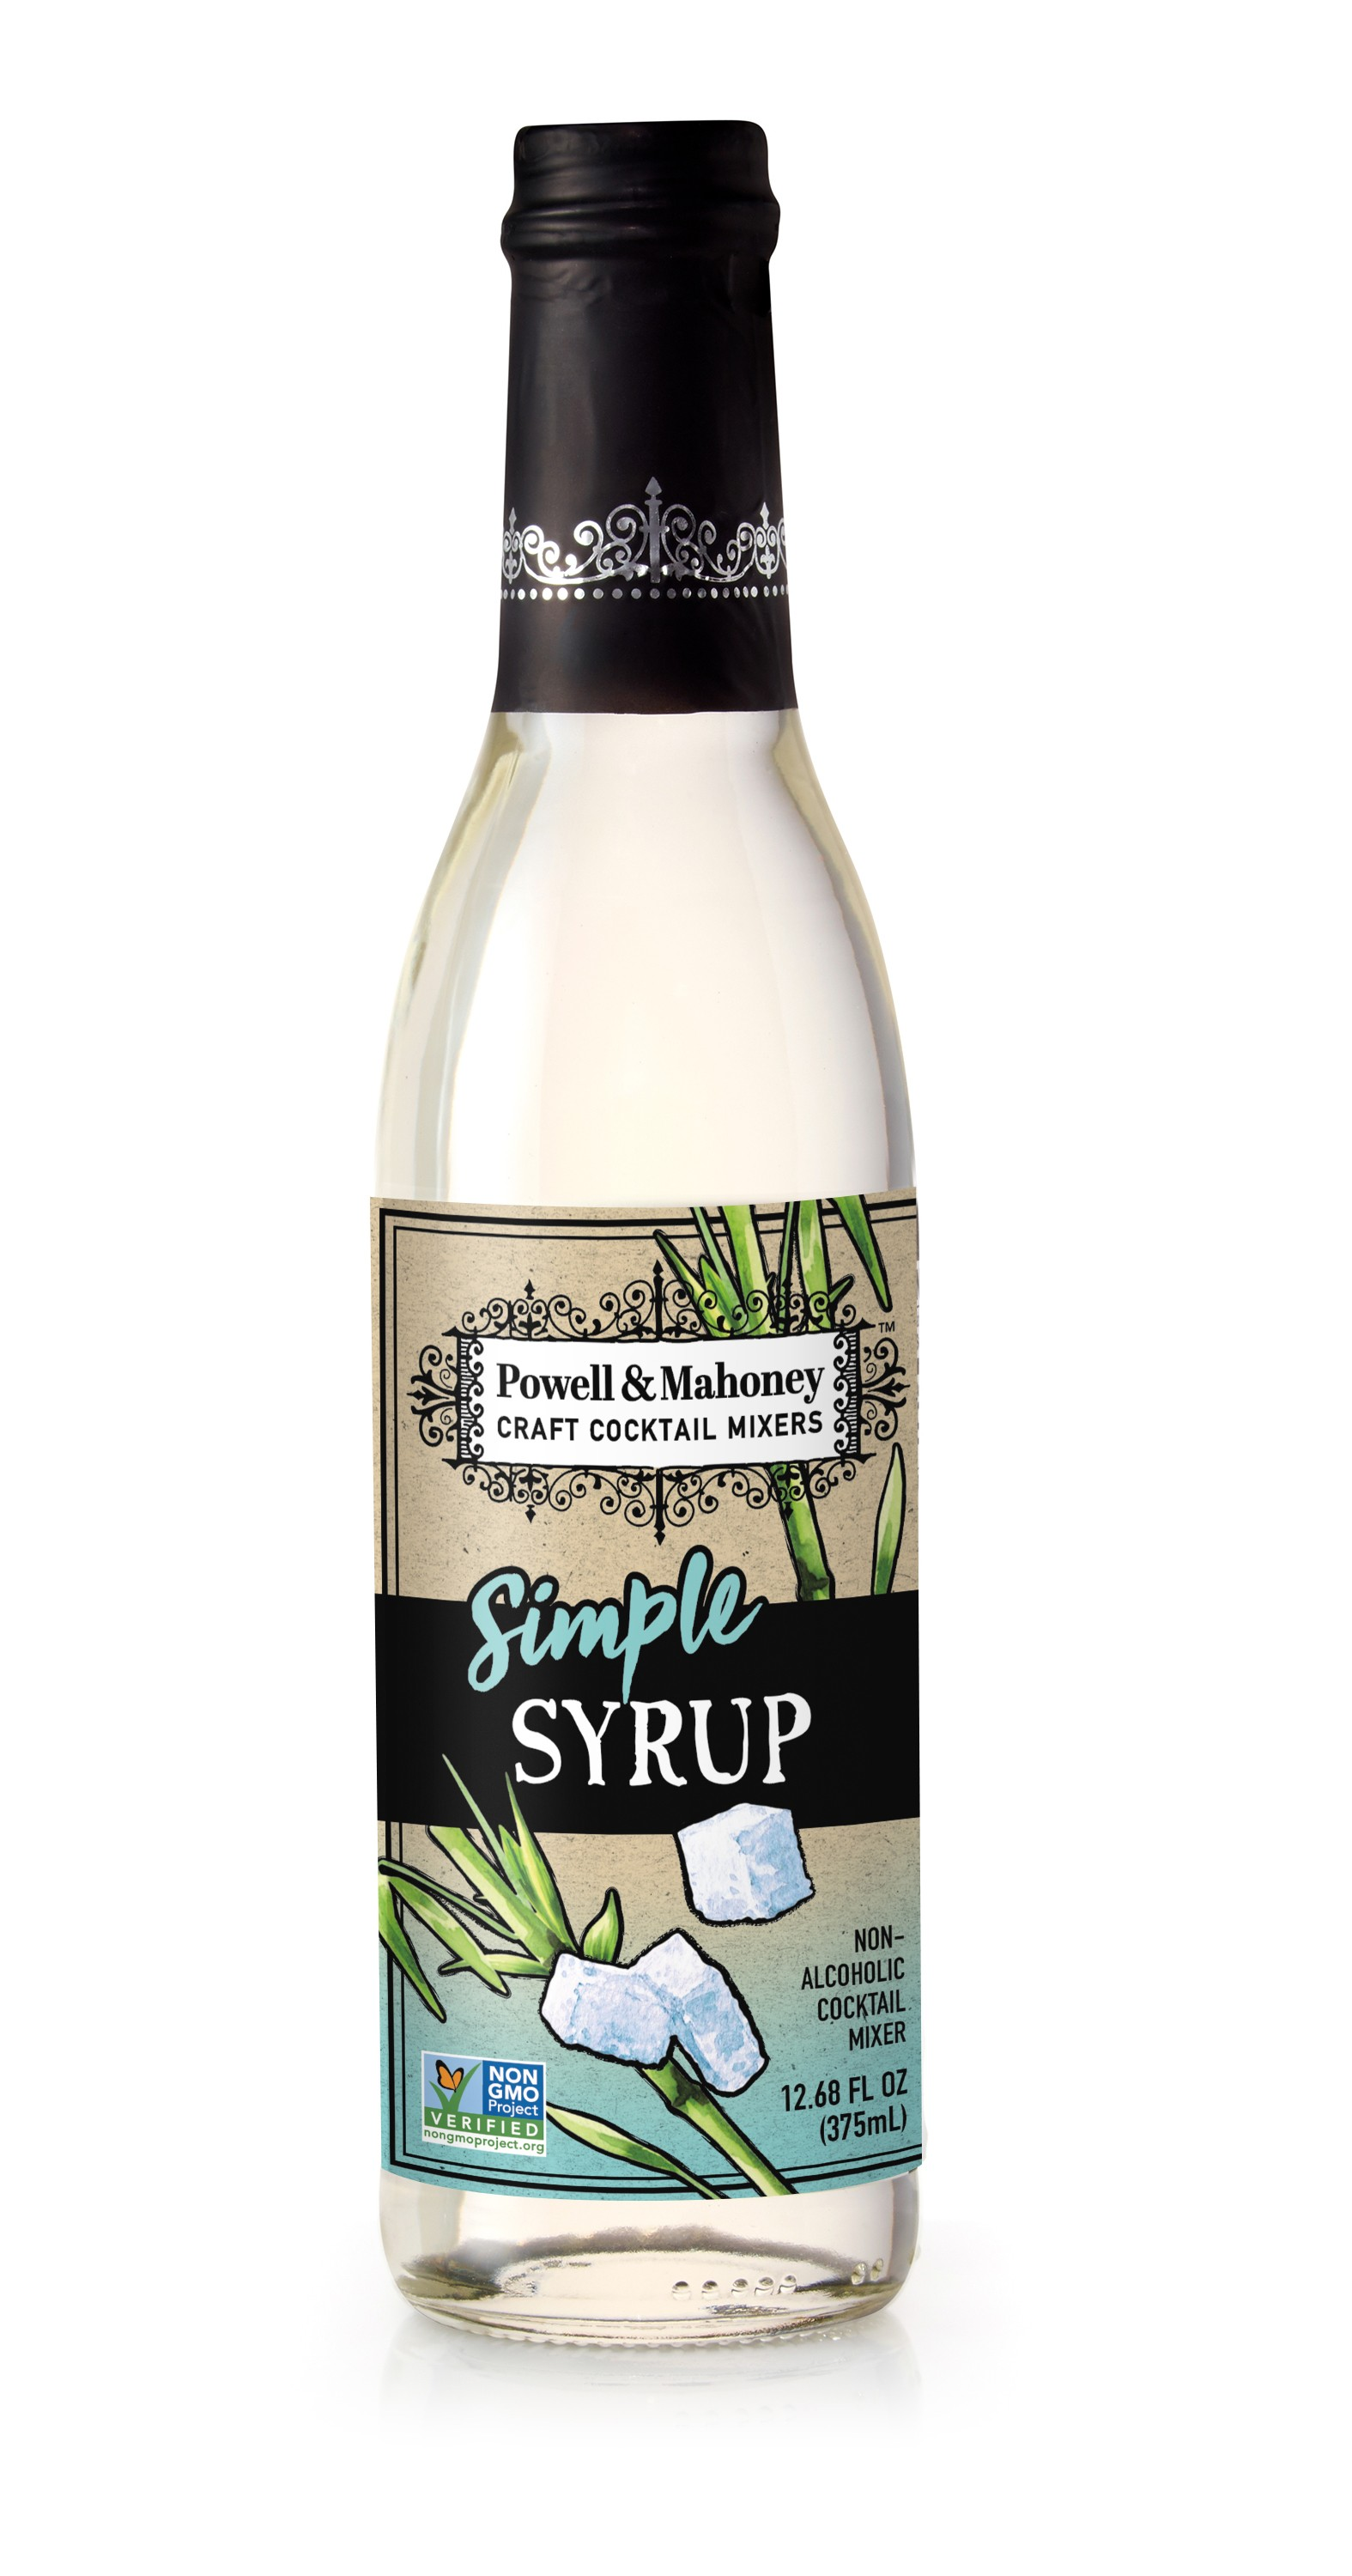 Powell & Mahoney Simple Syrup - 375mL Bottle